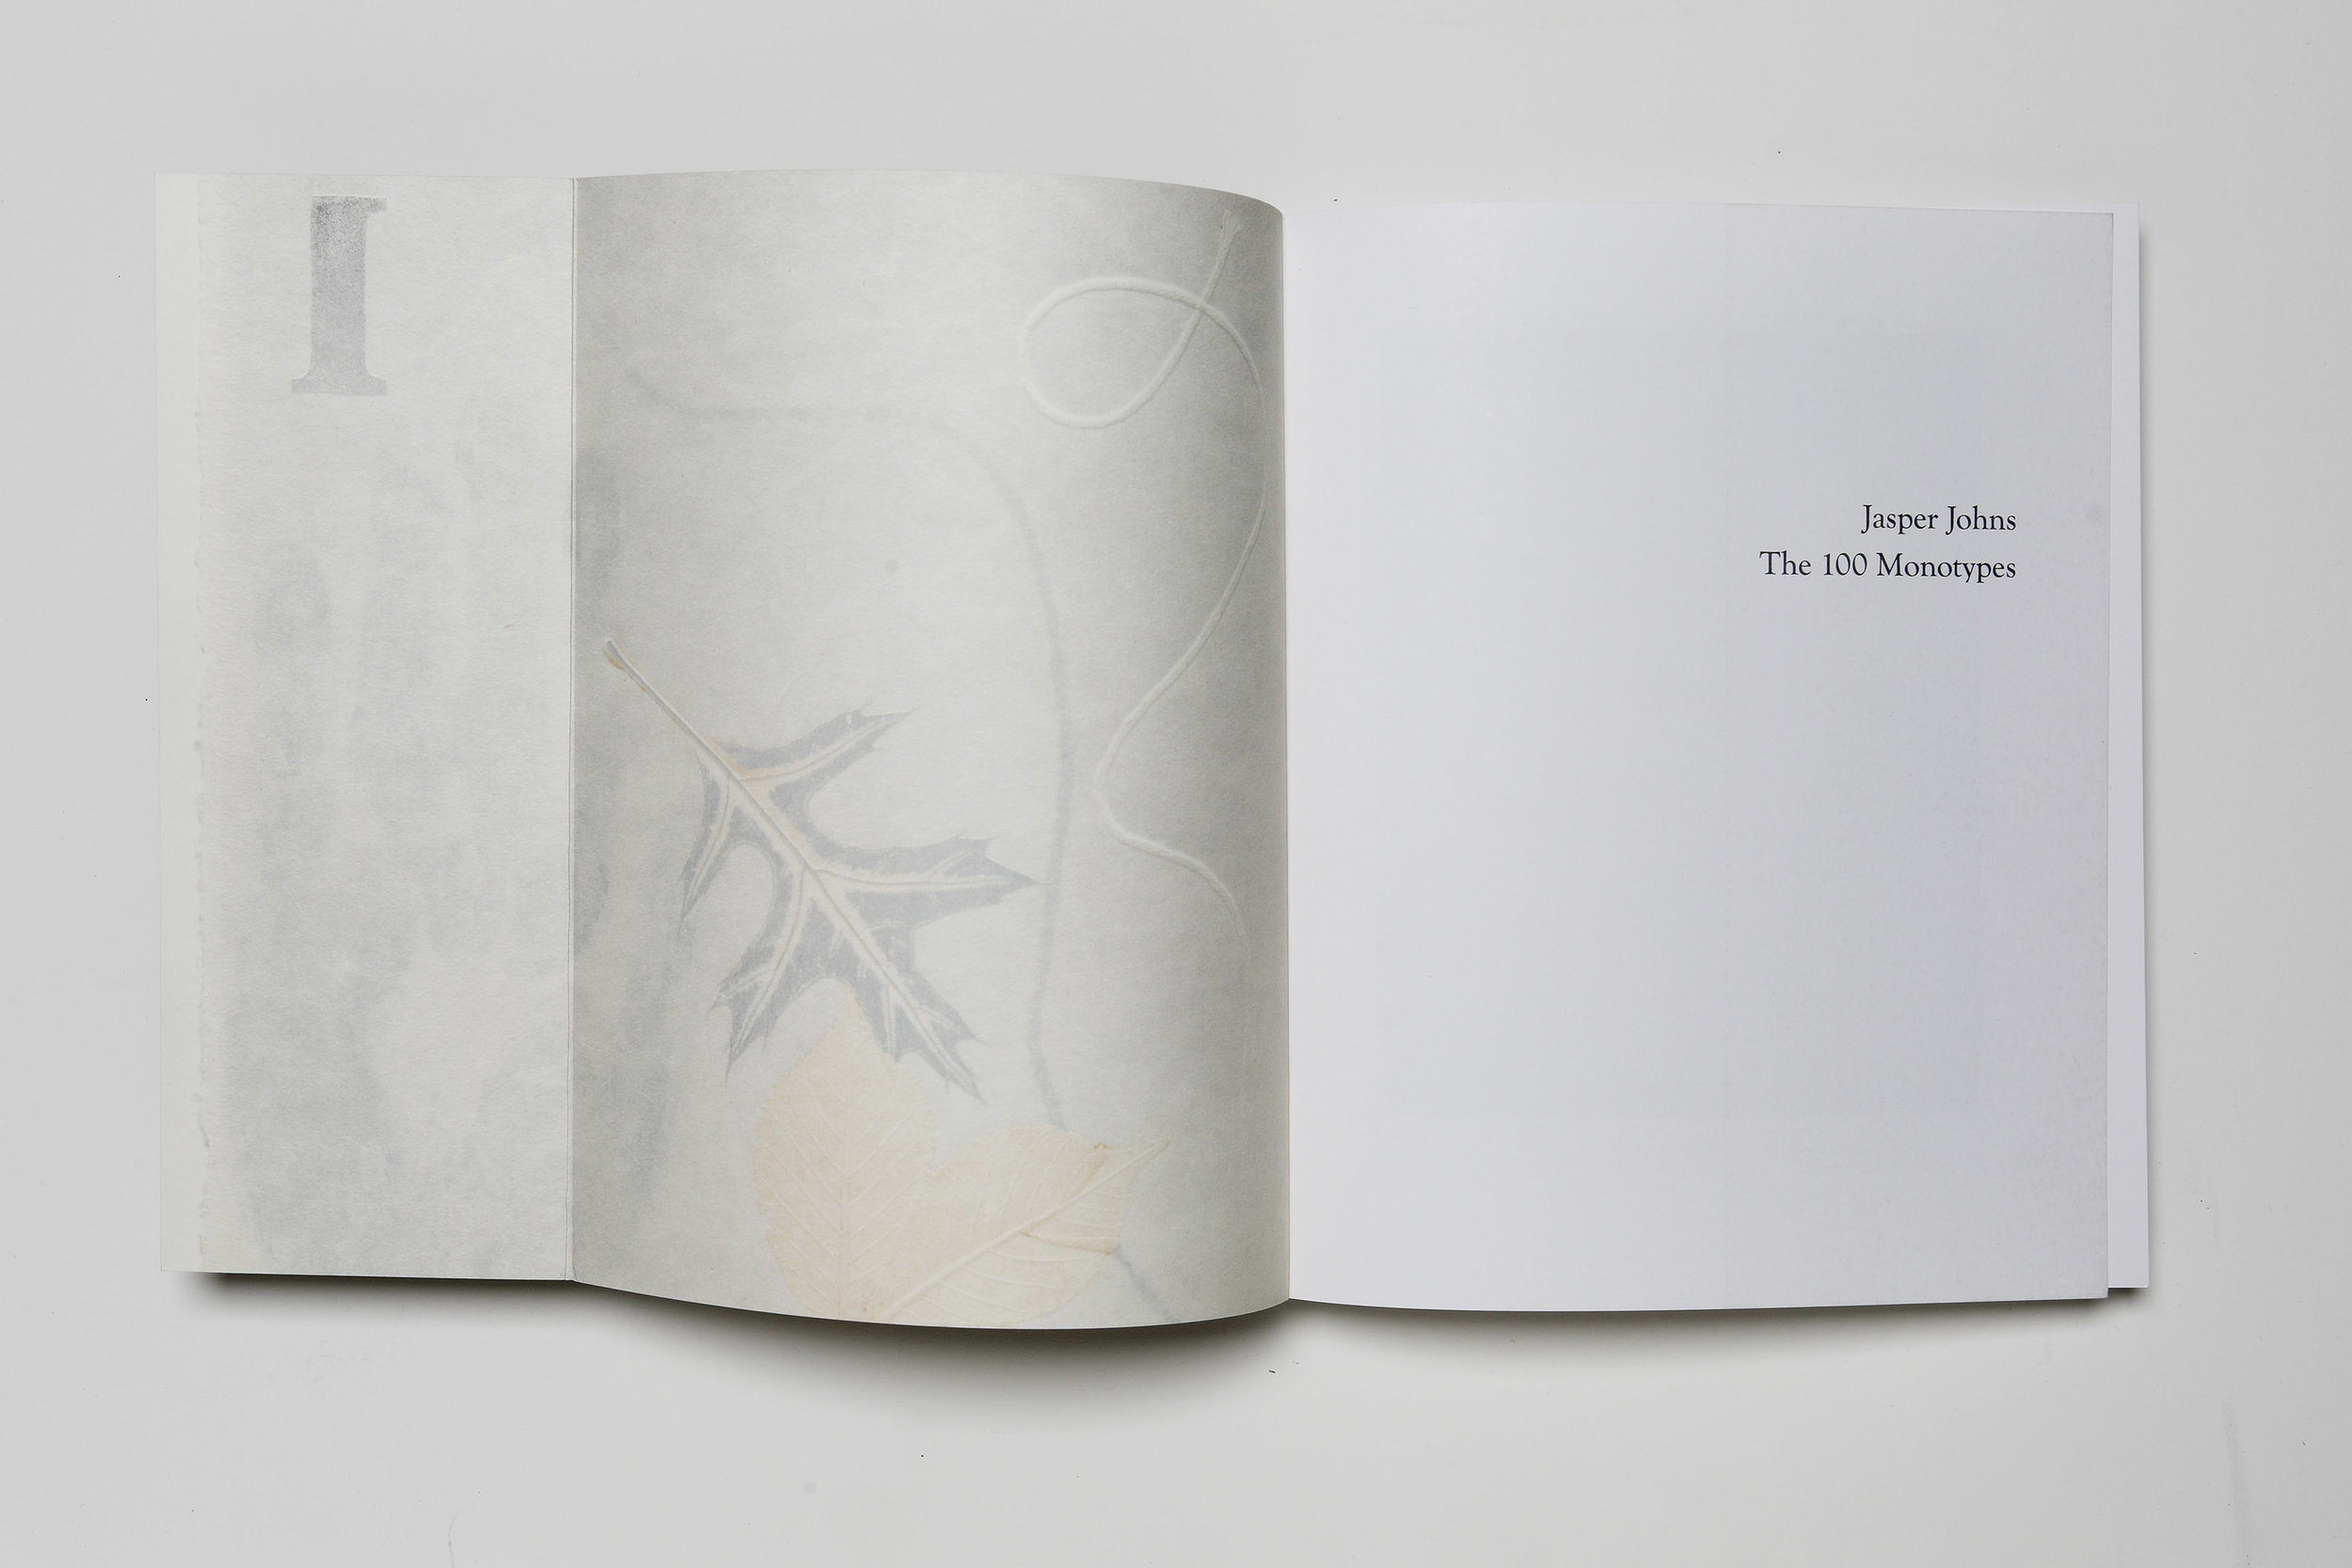 Jasper Johns: The 100 Monotypes, Softcover, front interior flap